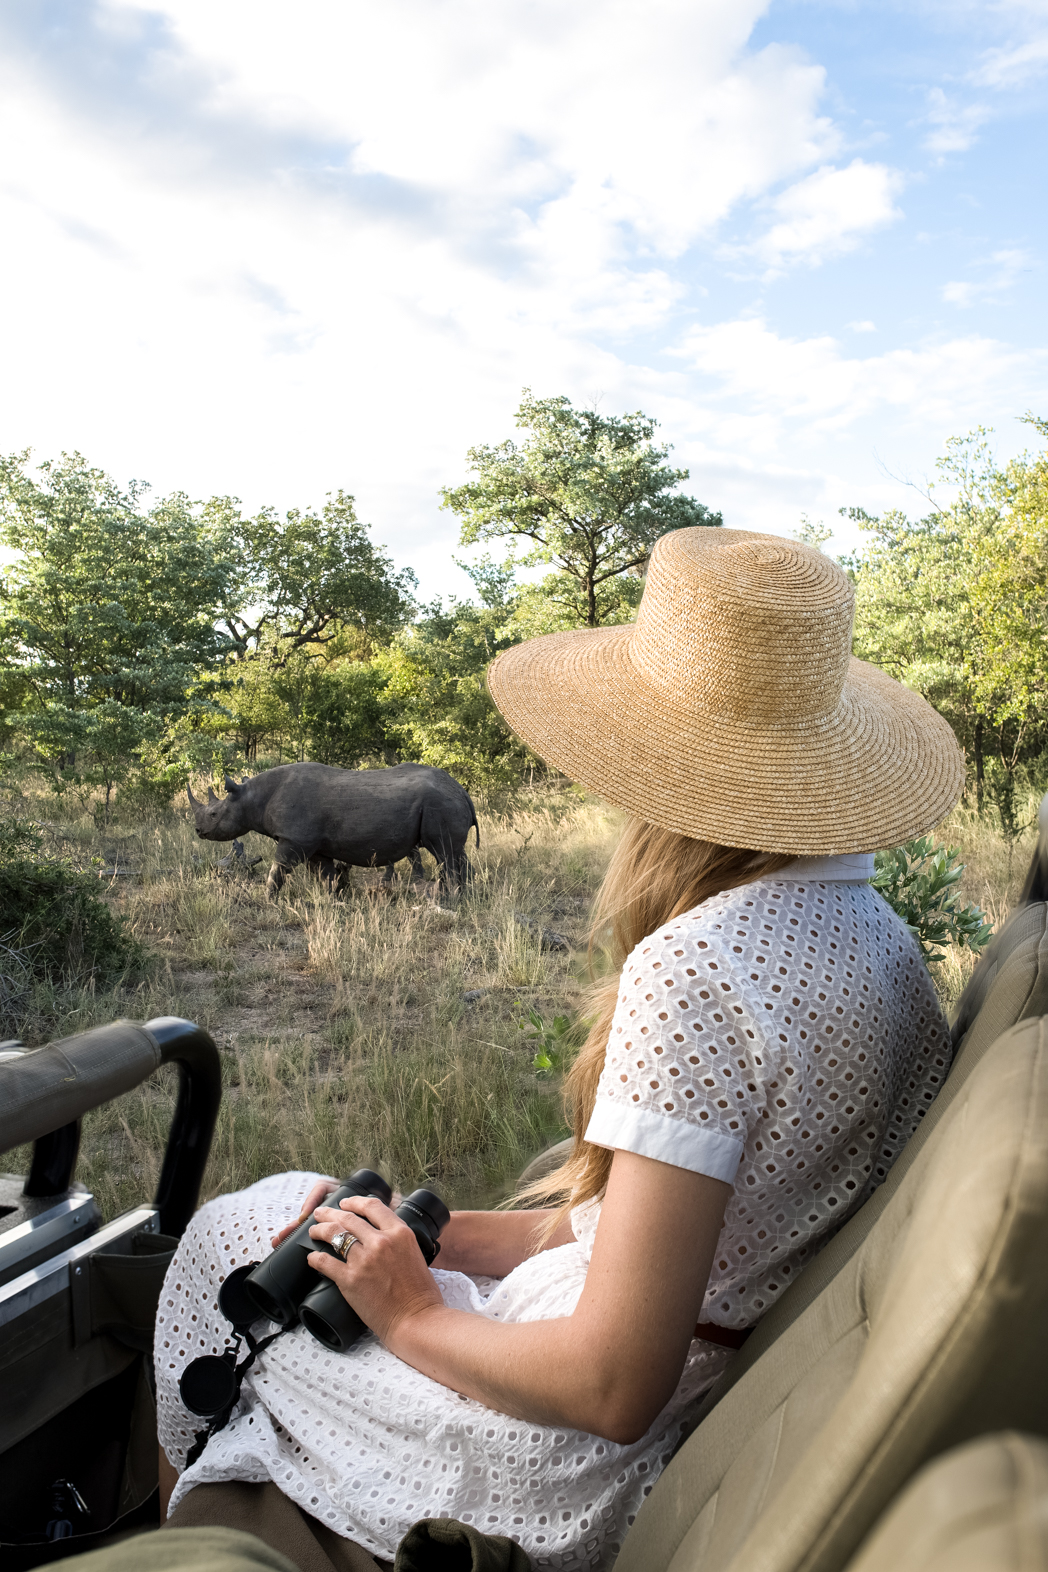 Stacie Flinner Royal Malewane Safari Honeymoon-33.jpg